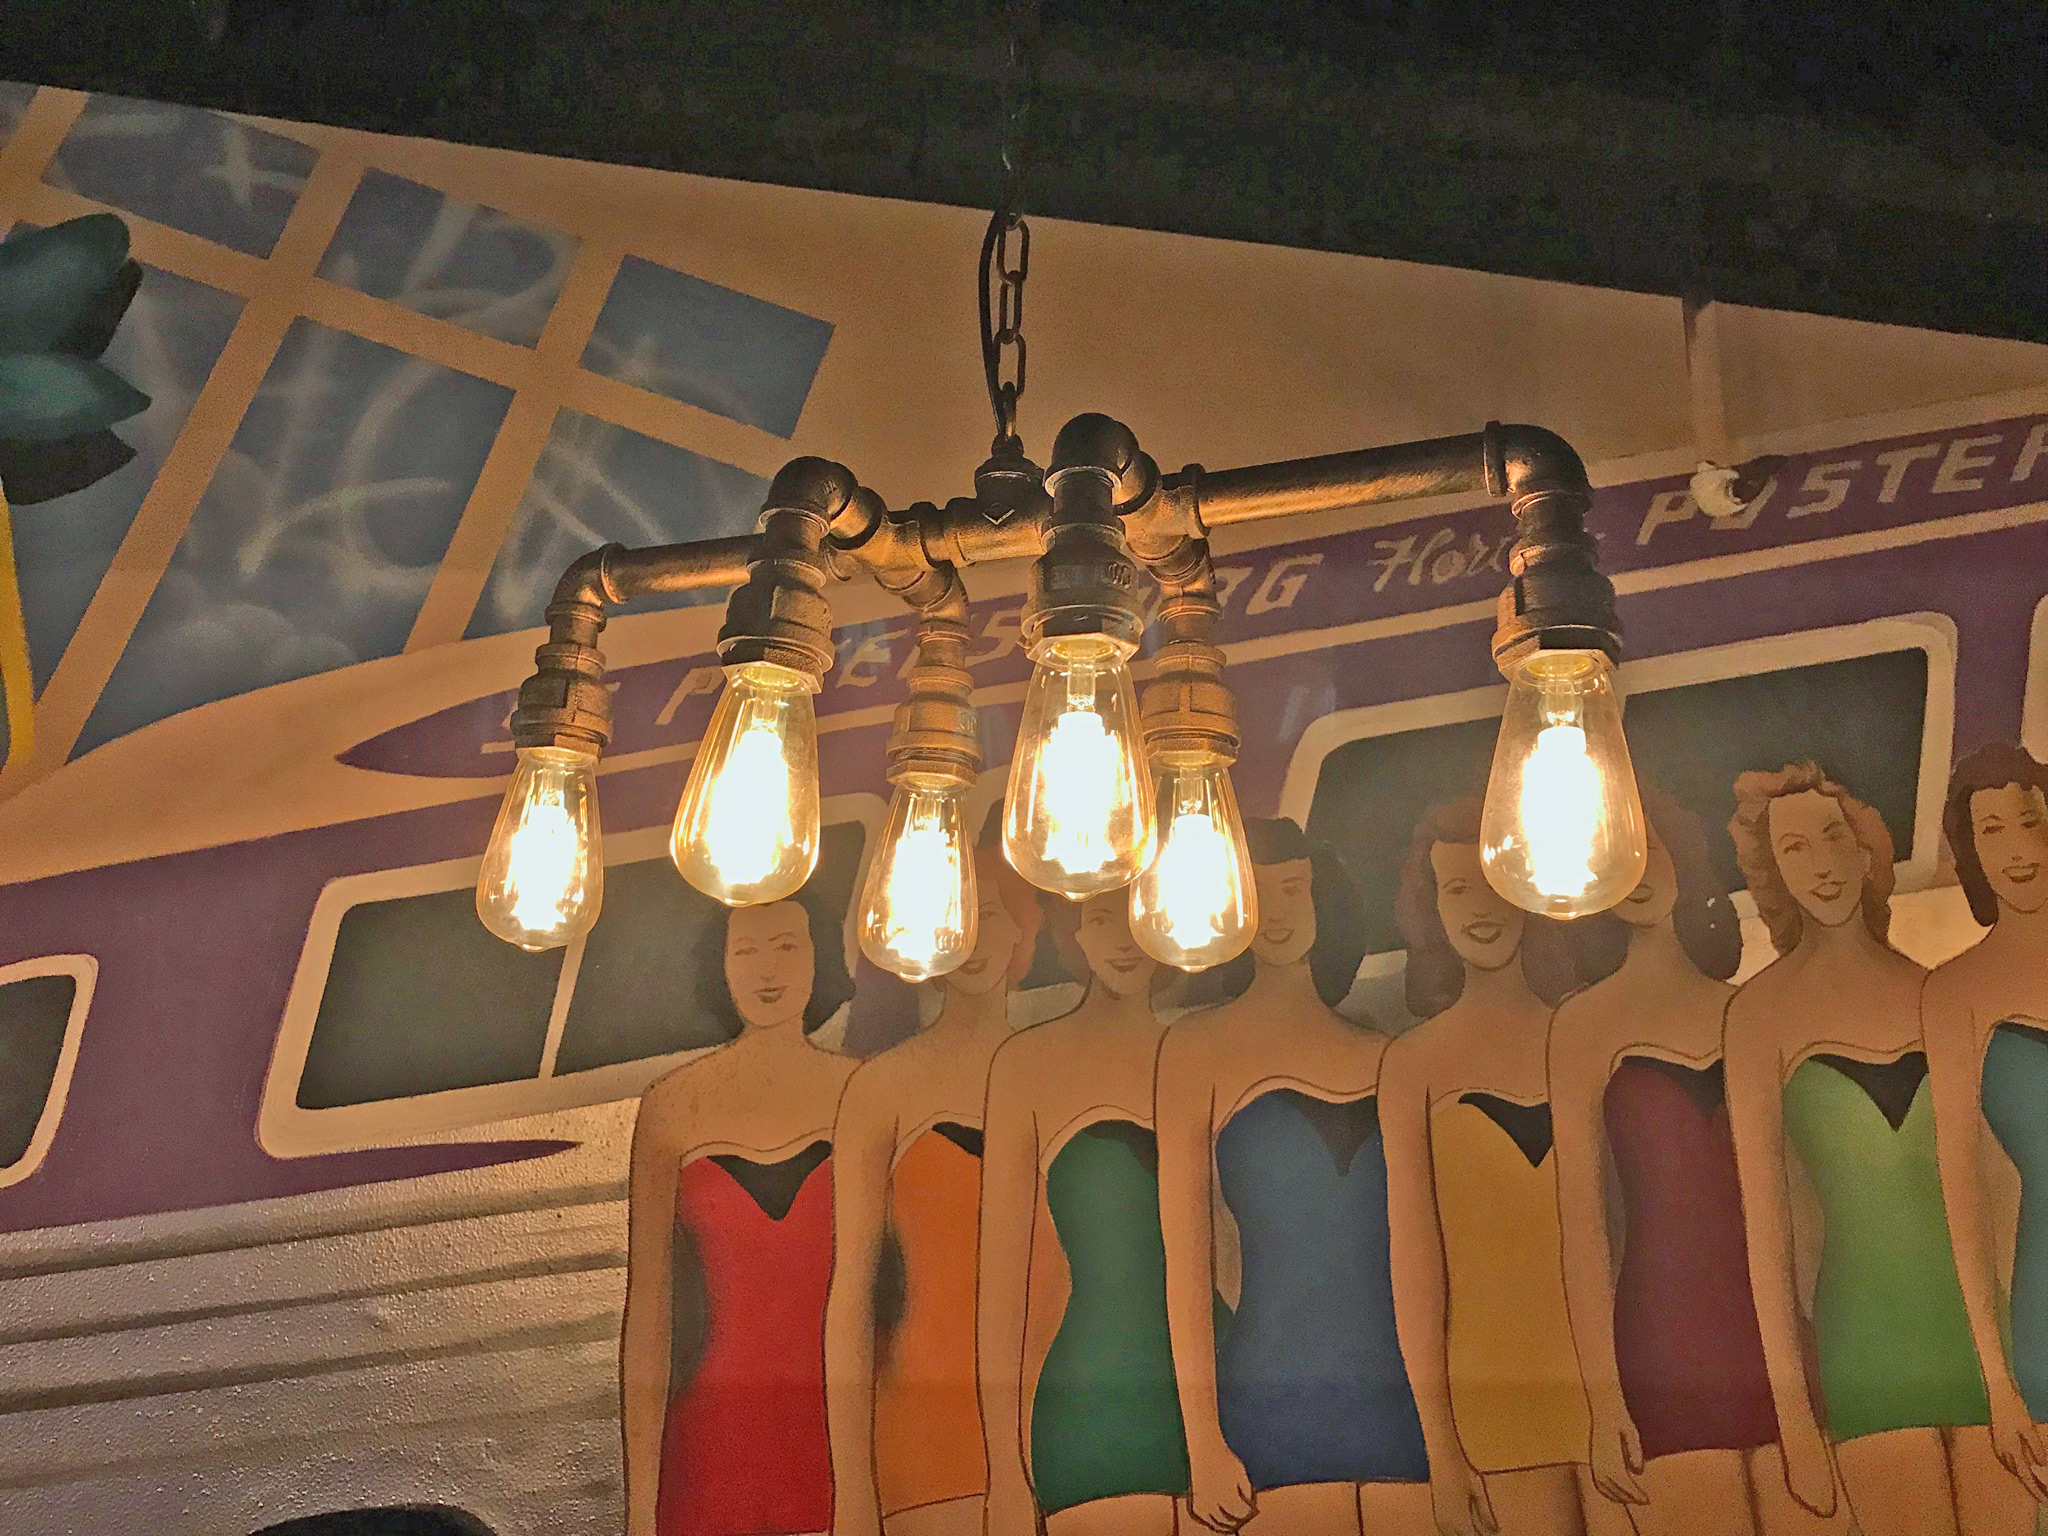 Creative Light Fixture at The Hive